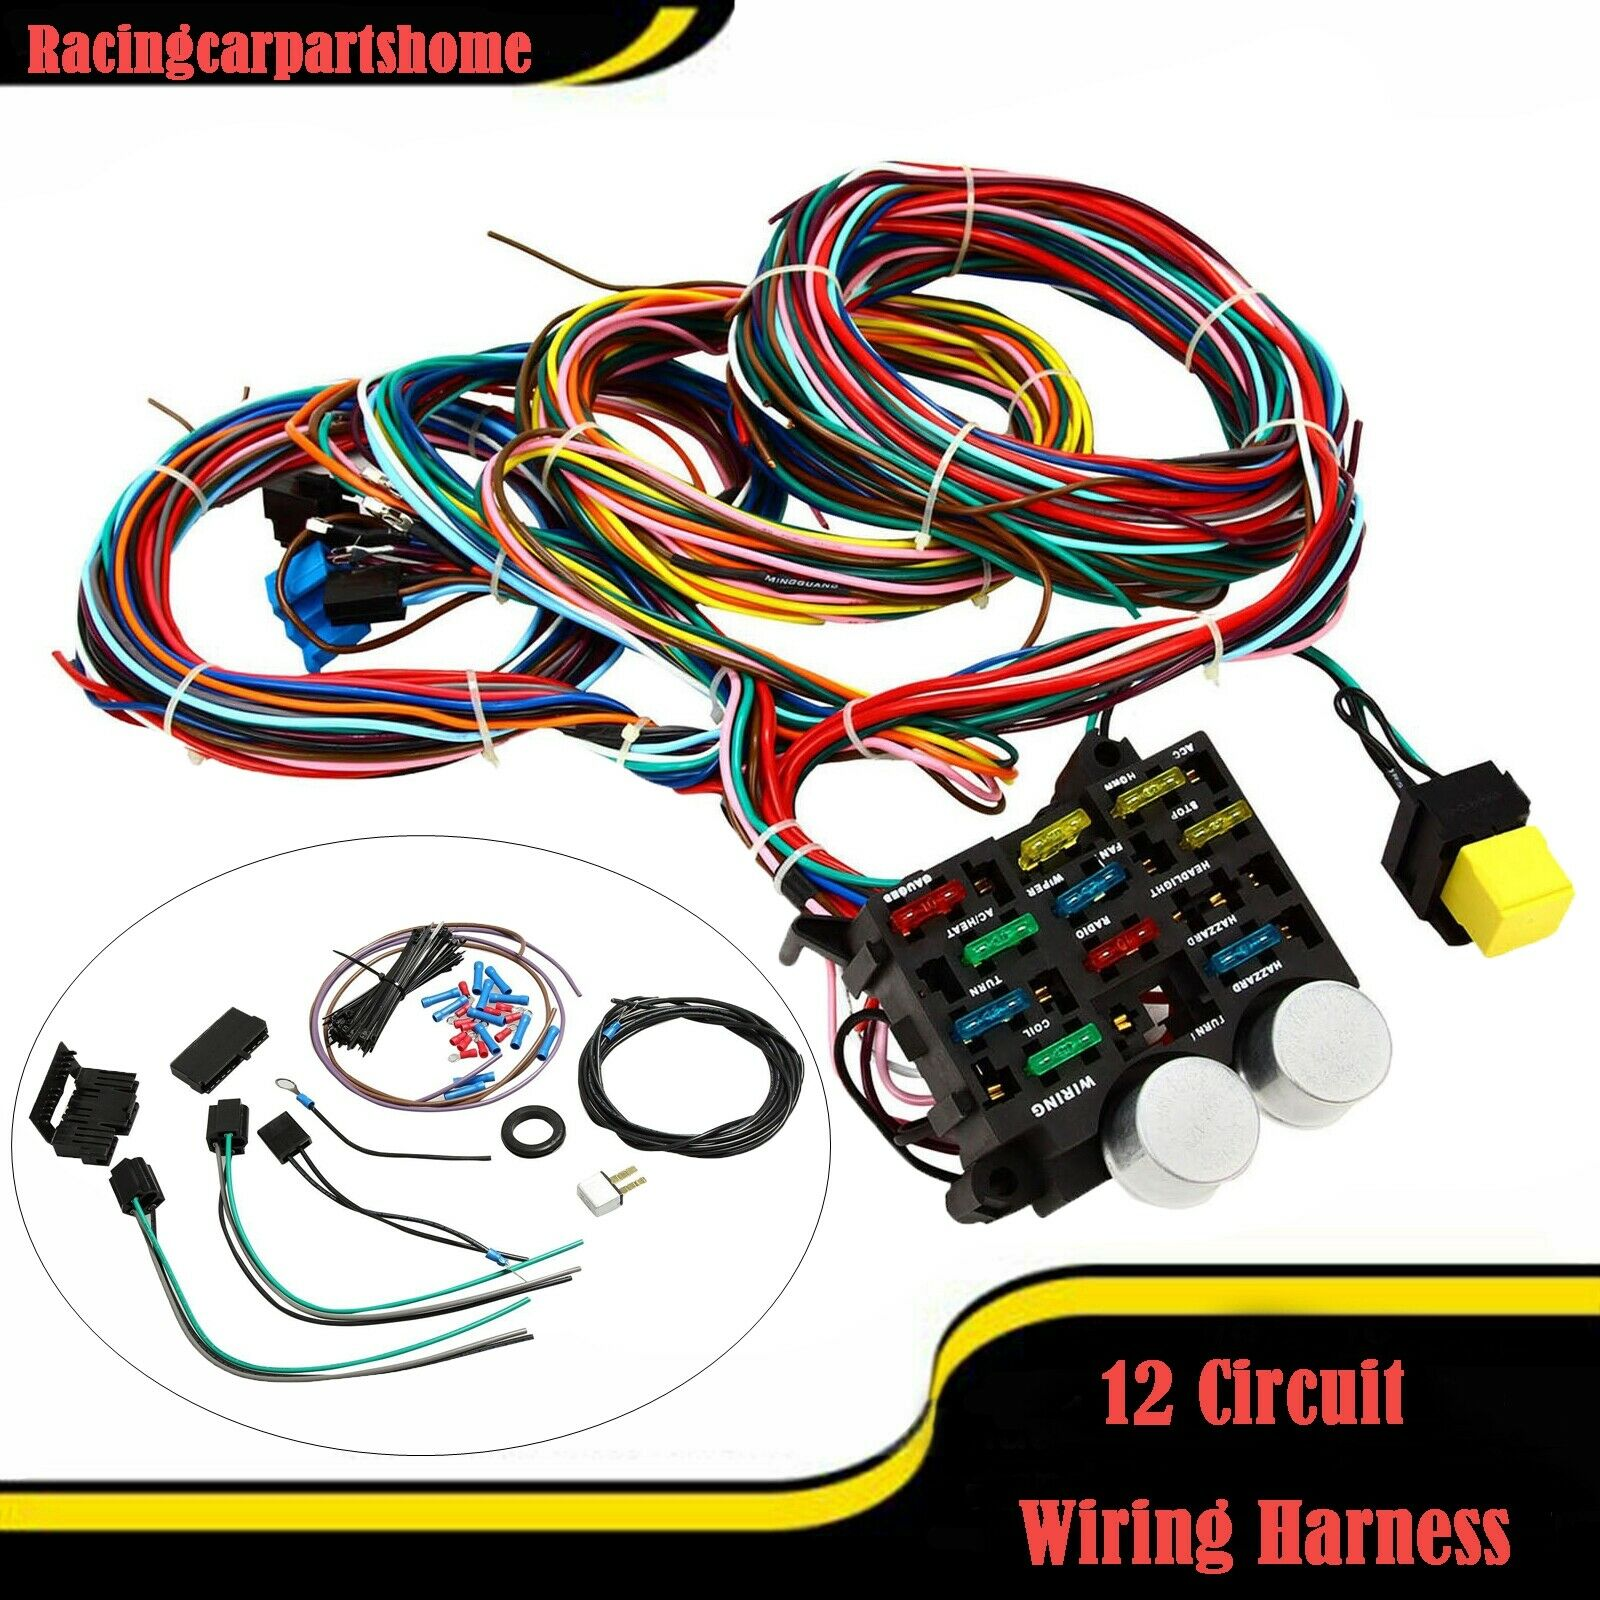 universal wire 12 circuit hot rod wiring harness for chevy mopar rh picclick com hot rod wiring harness australia hot rod wiring harness ls1